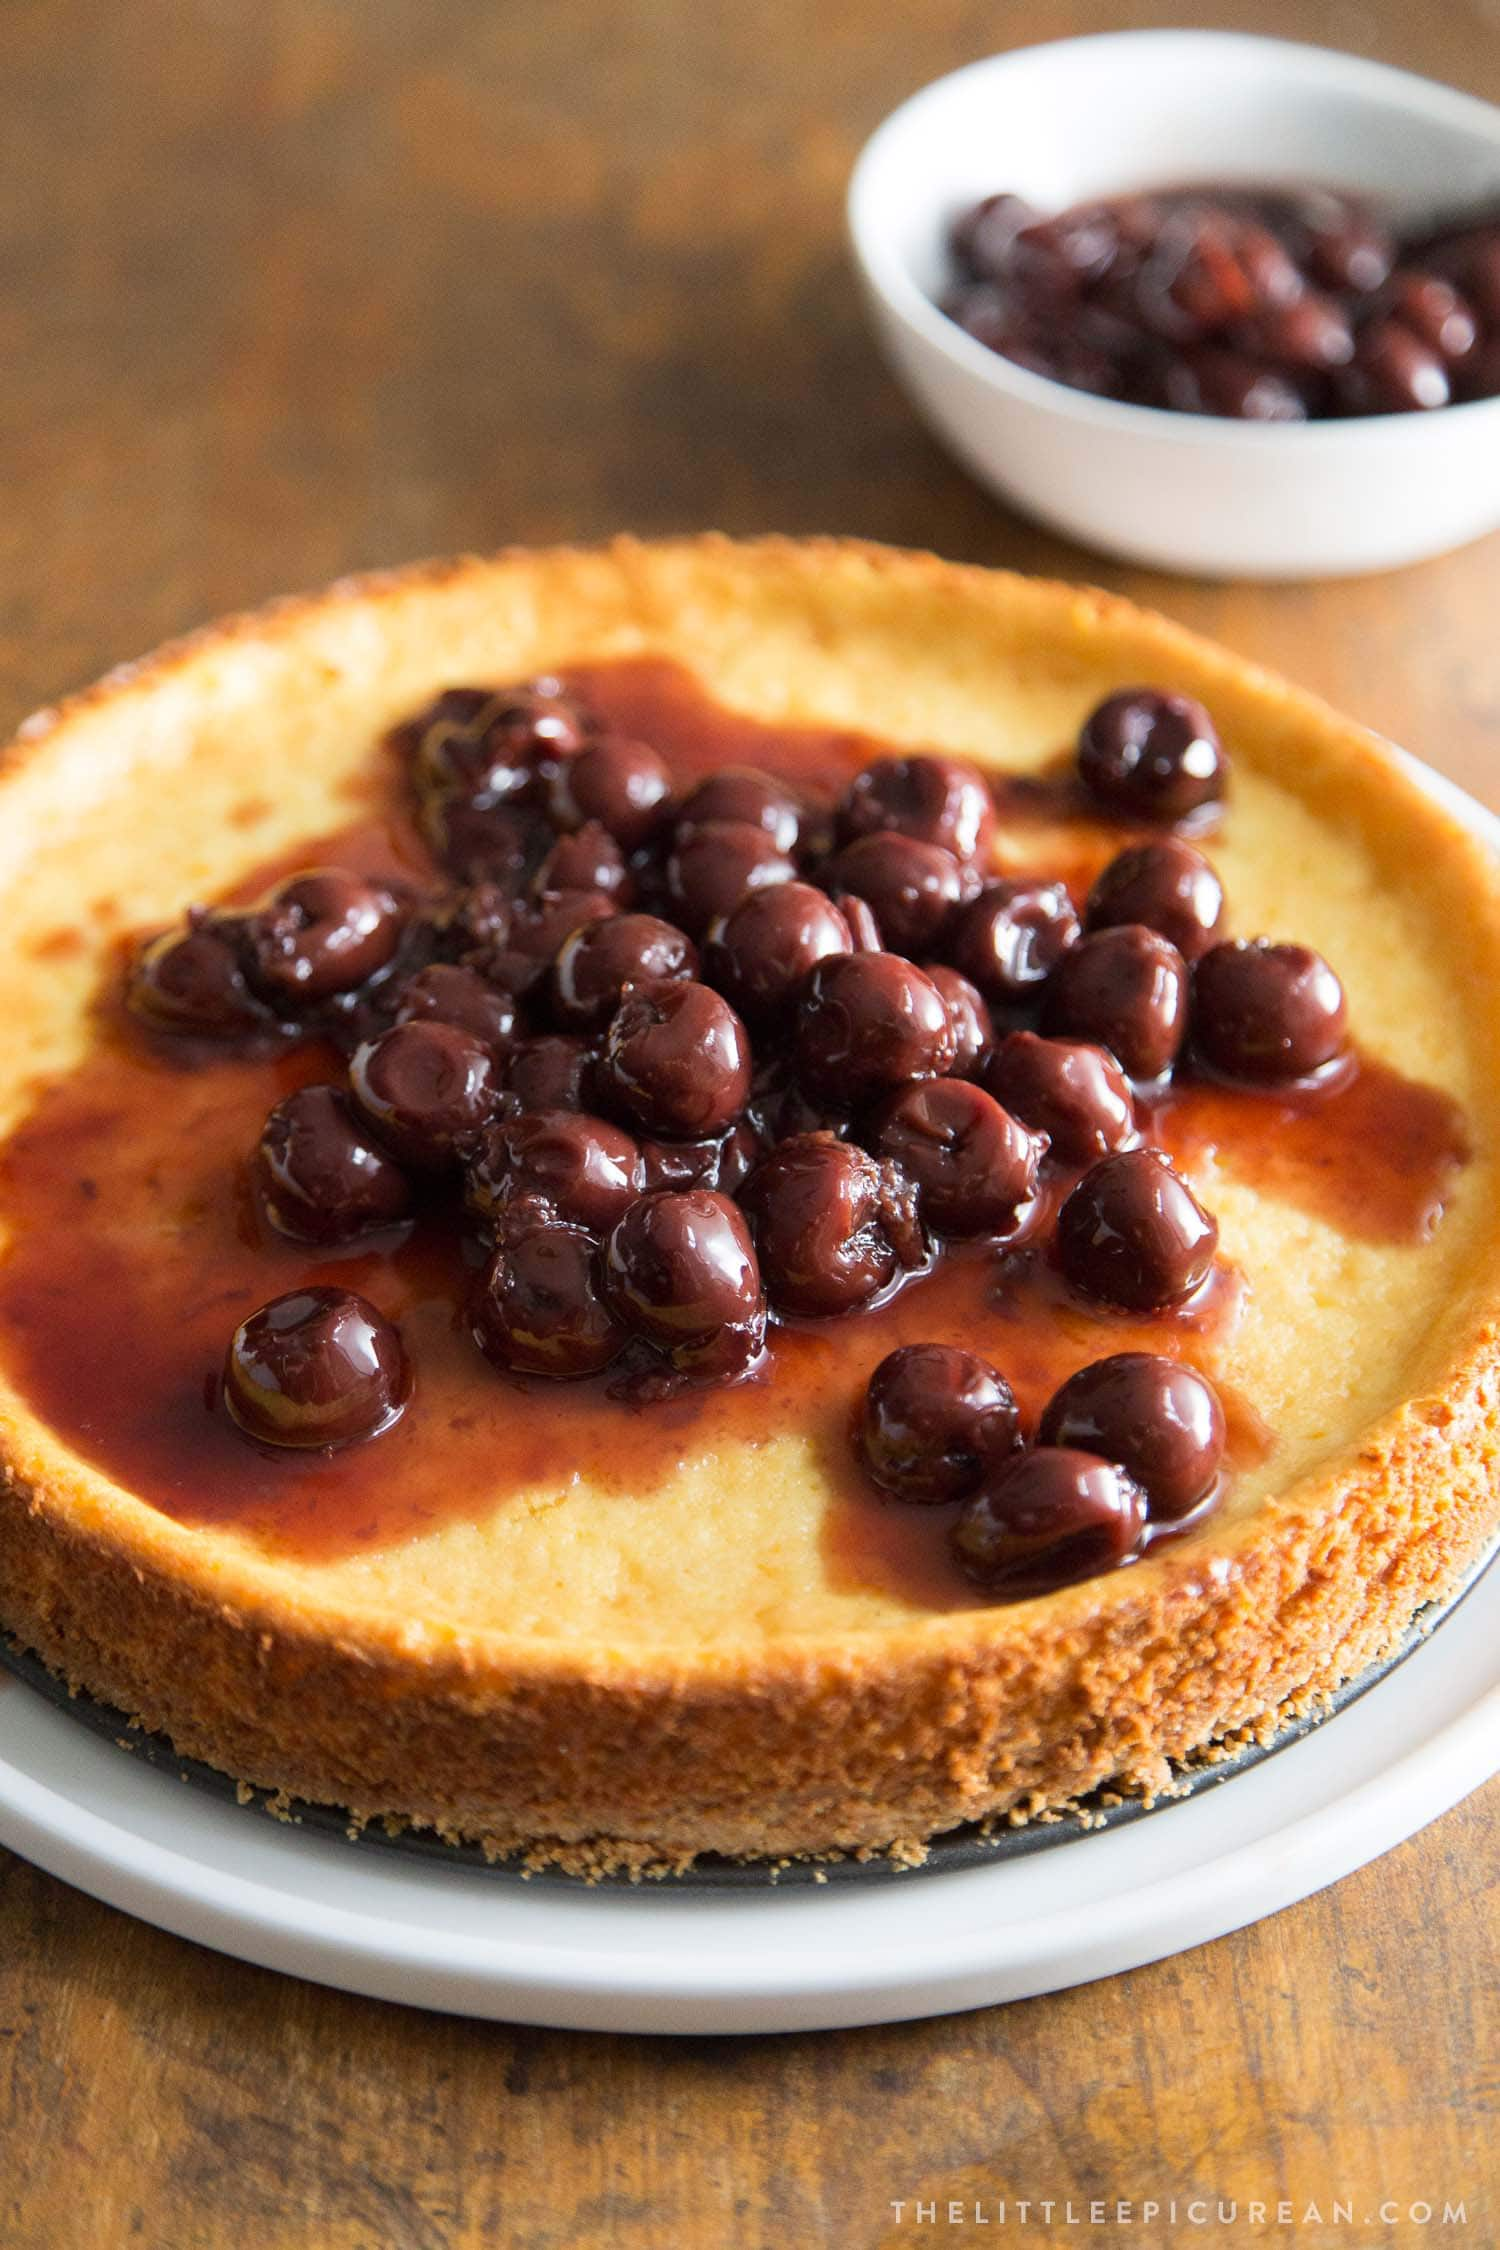 Ricotta cheesecake with brandied cherries topping